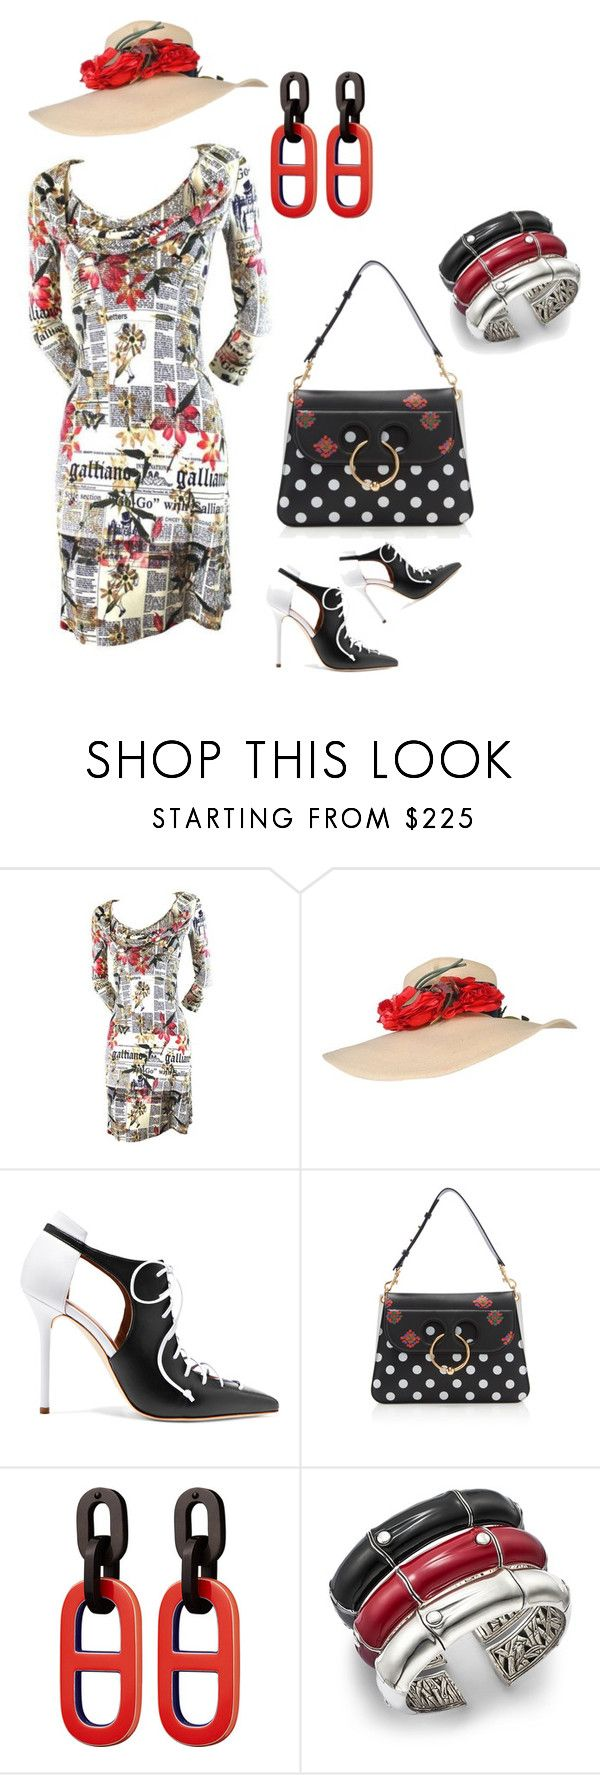 """""""Southern Chic"""" by dlc18424 ❤ liked on Polyvore featuring John Galliano, Malone Souliers, J.W. Anderson and John Hardy"""